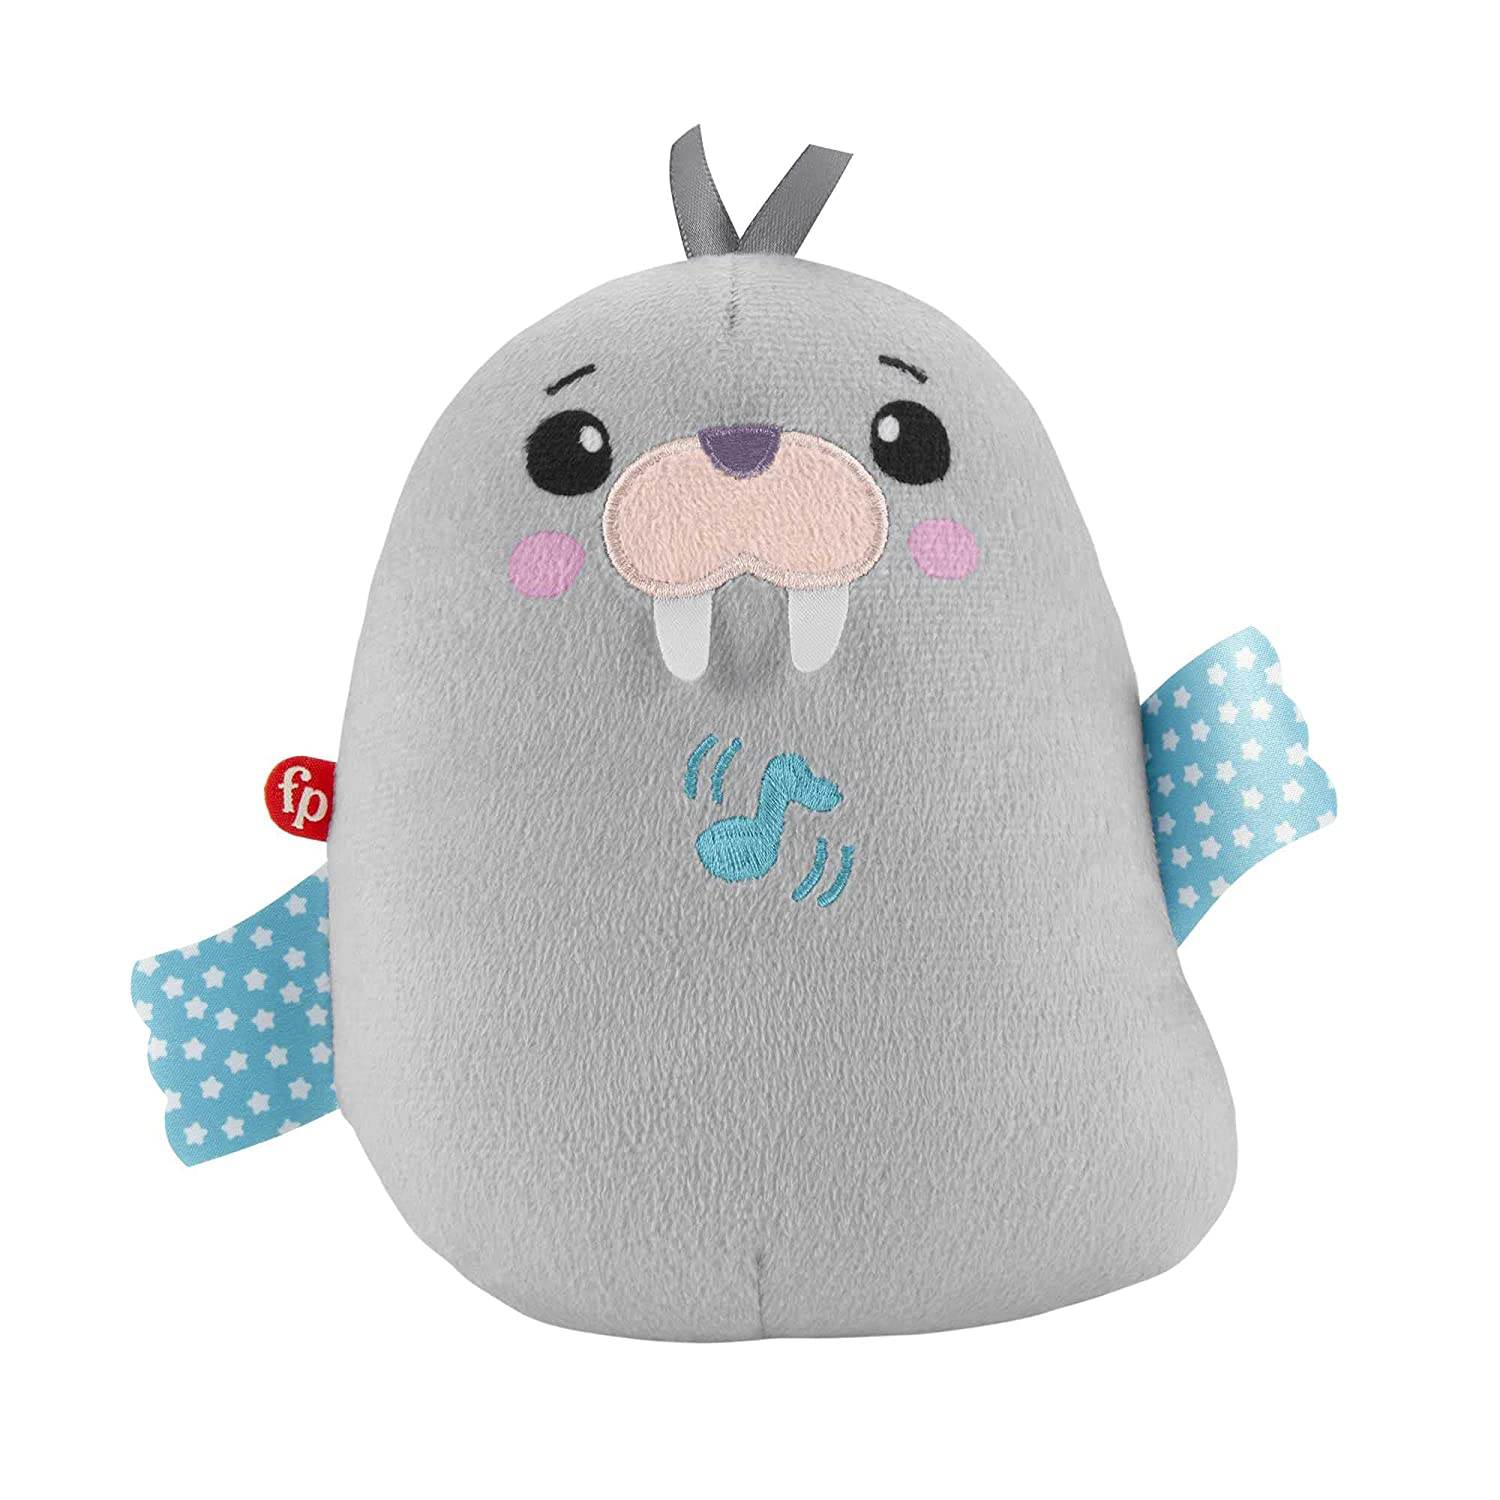 Fisher-Price Chill Vibes Walrus Soother, Take-Along Musical Plush Toy with Calming Vibrations for Infants, Multi